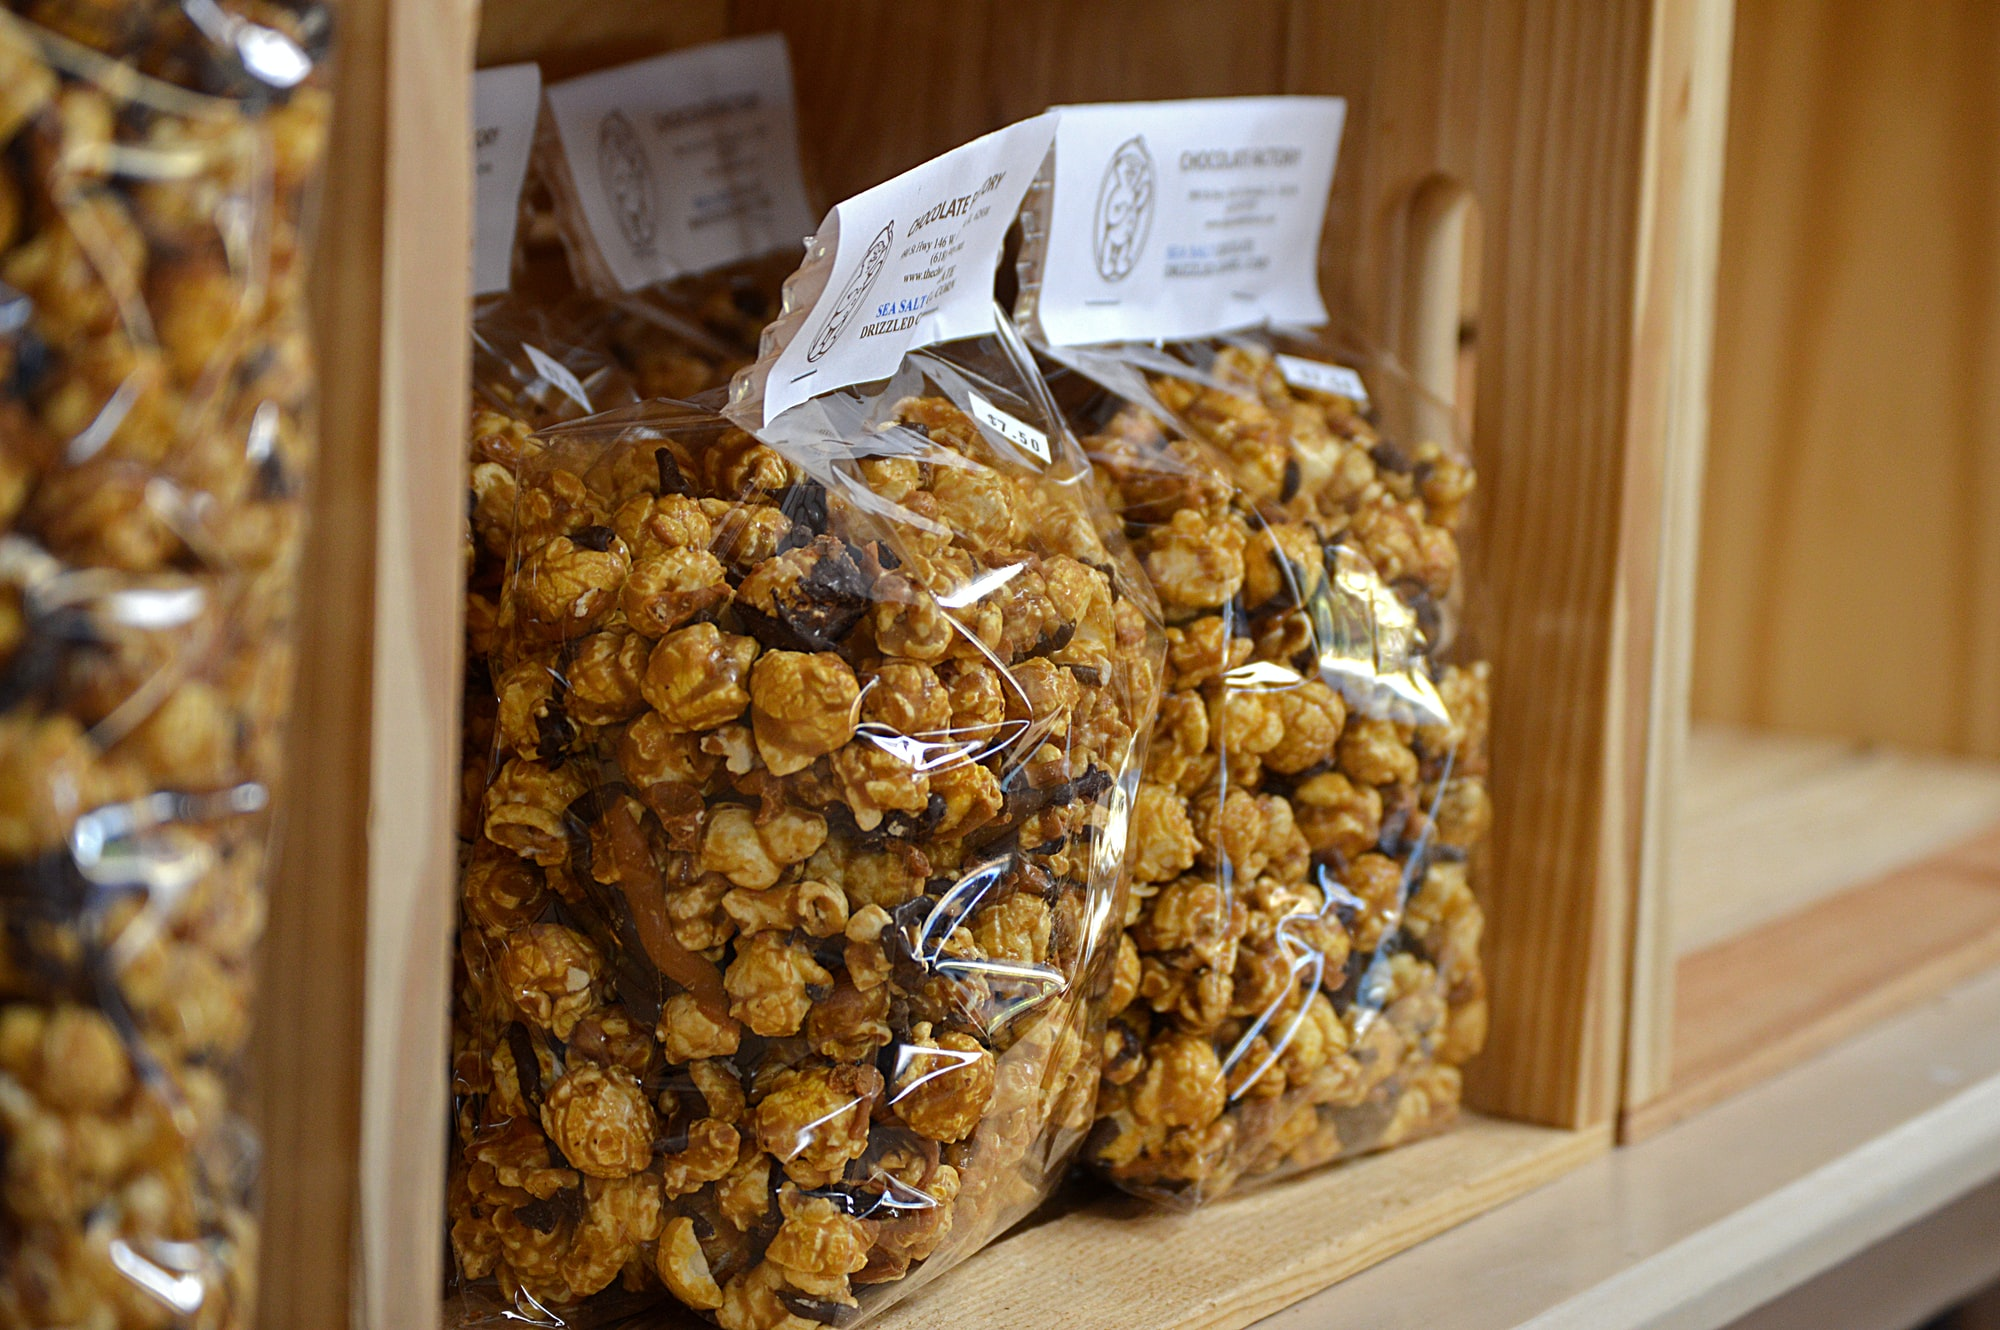 Delicious caramel corn from the Illinois State fair in DuQuoin, Illinois.